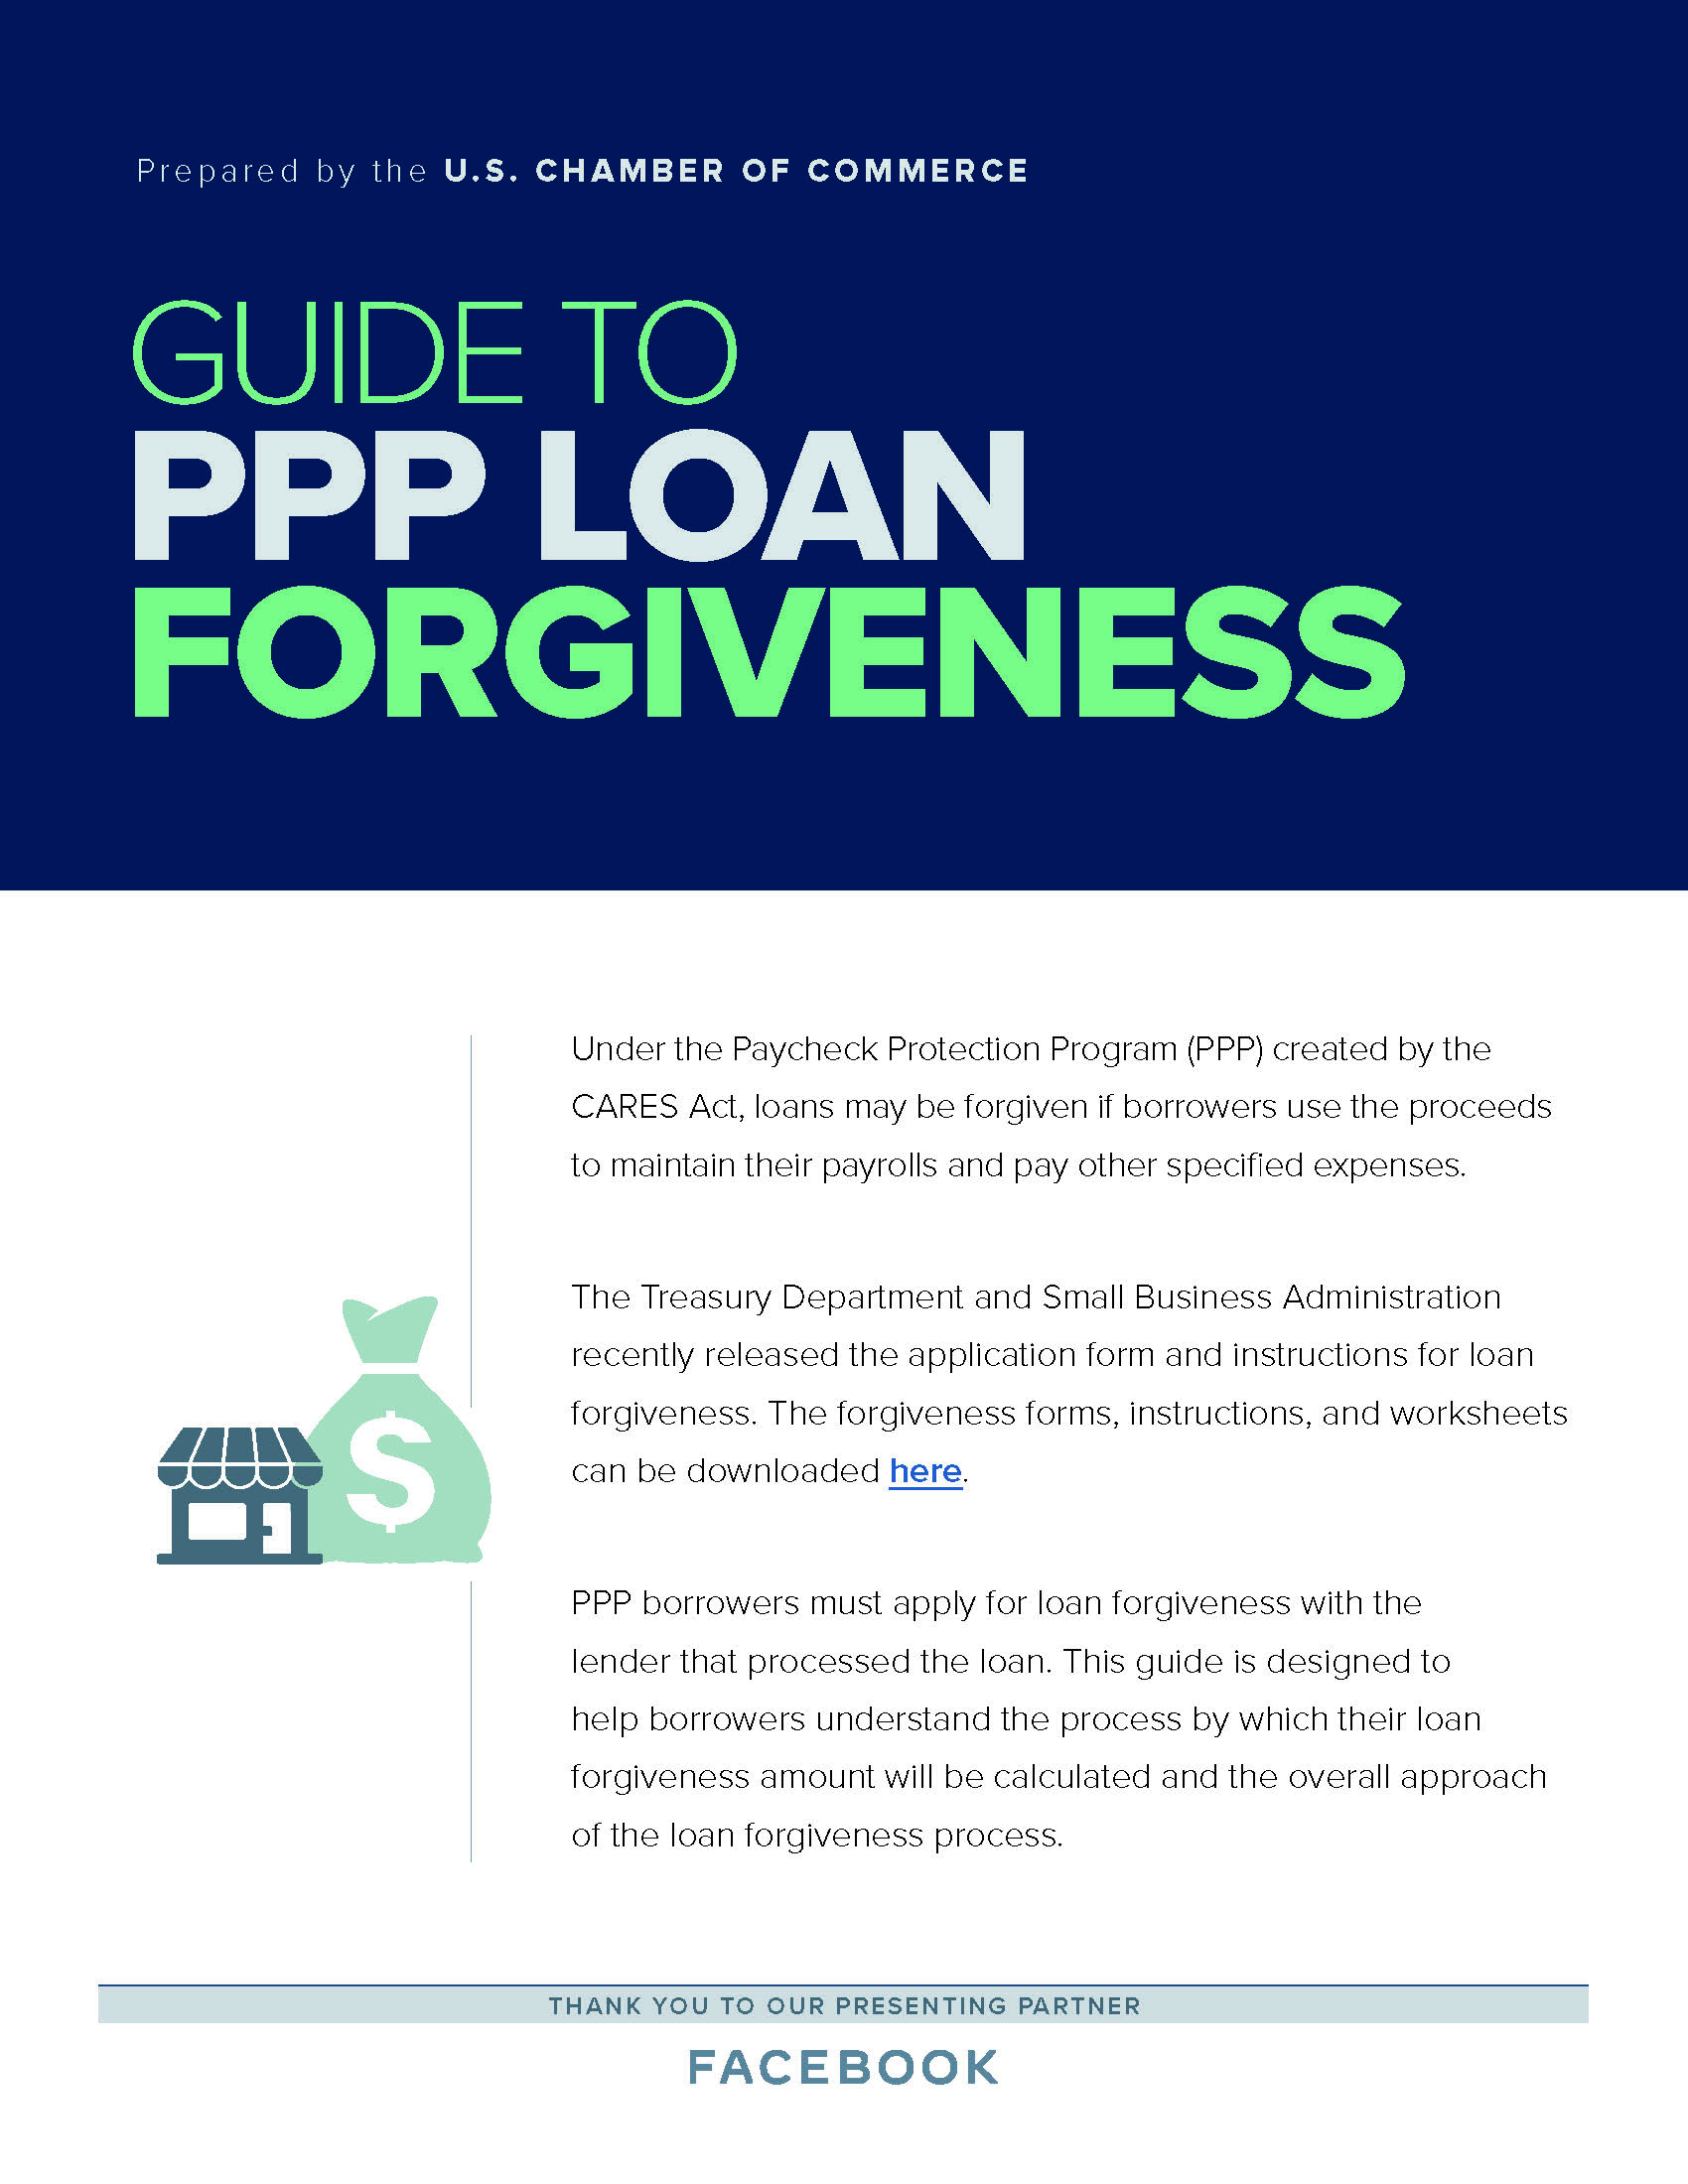 uscc_ppp_forgiveness-guide_Page_1